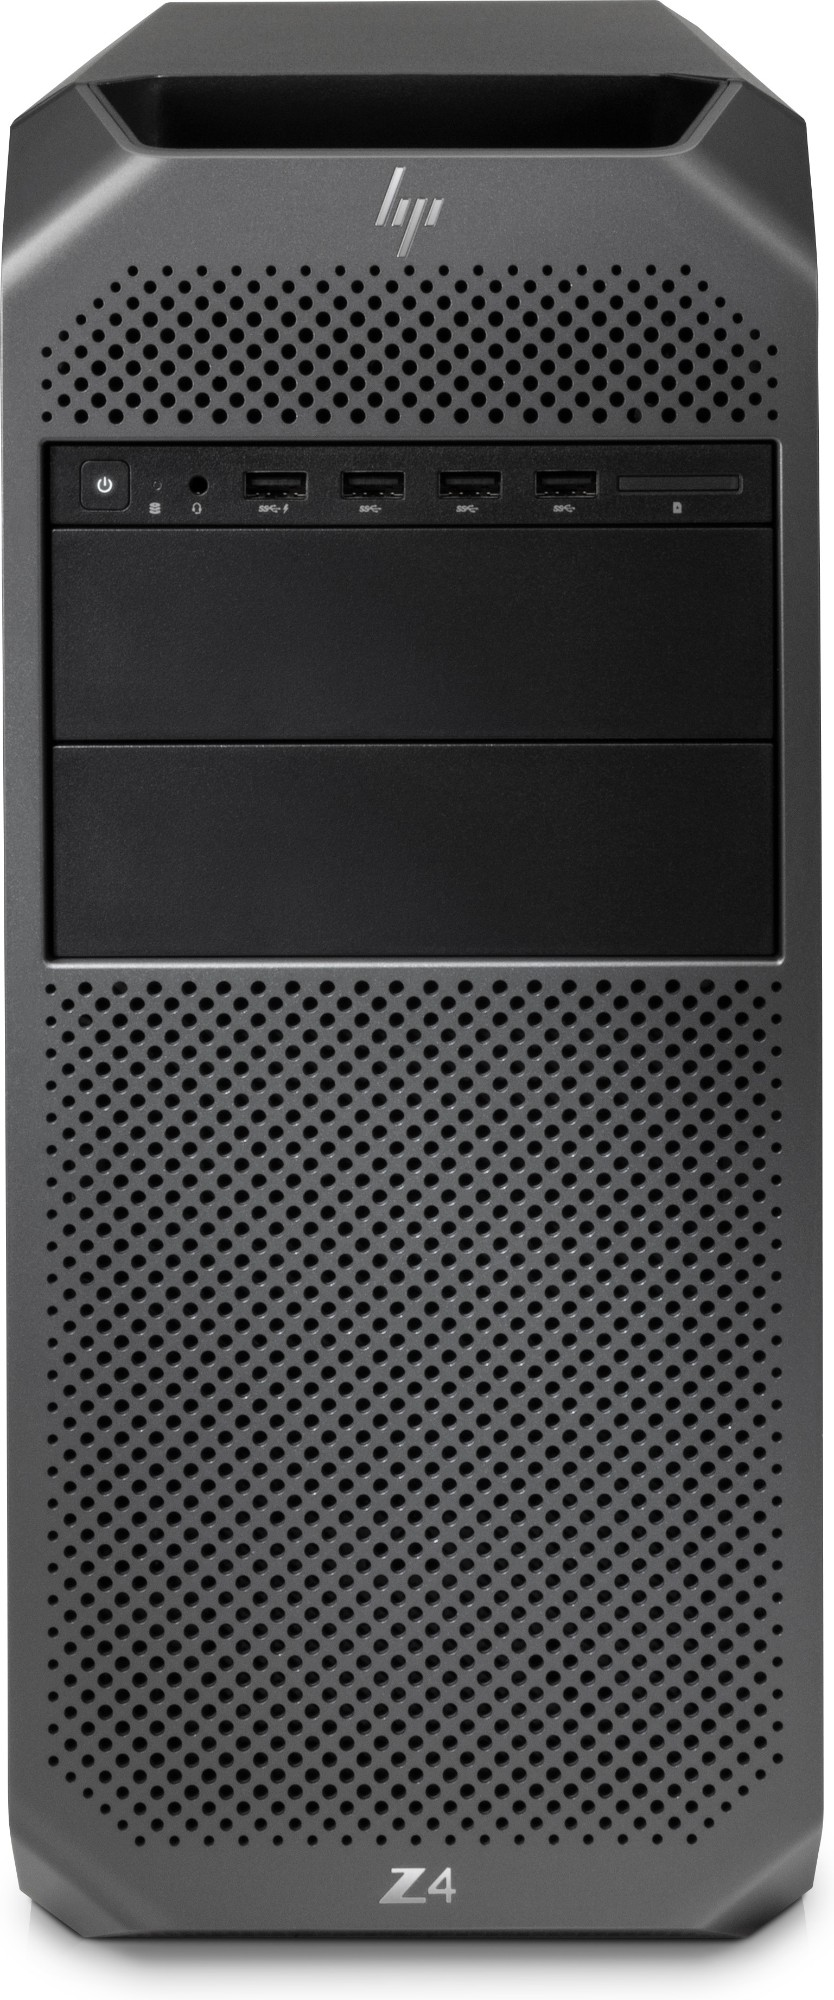 HP Z4 G4 Intel® Core™ i9 X-series i9-10940X 16 GB DDR4-SDRAM 512 GB SSD Tower Black Workstation Windows 10 Pro